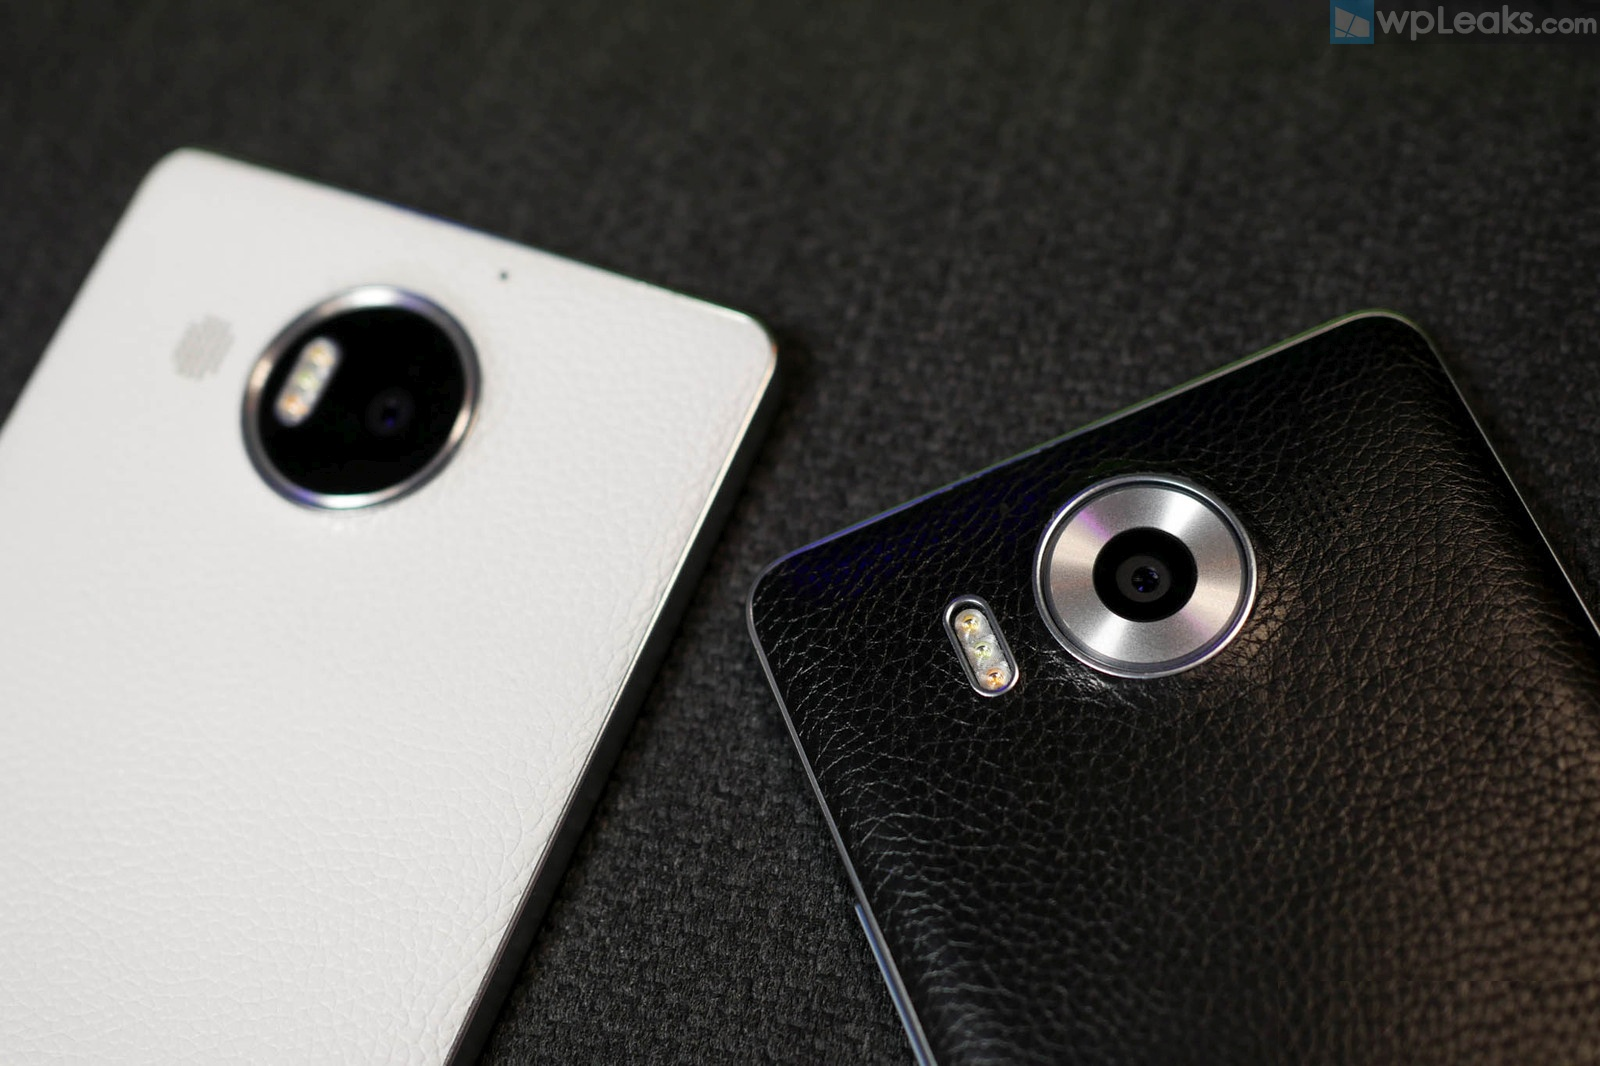 lumia-950-xl-lumia-950-back-mozo